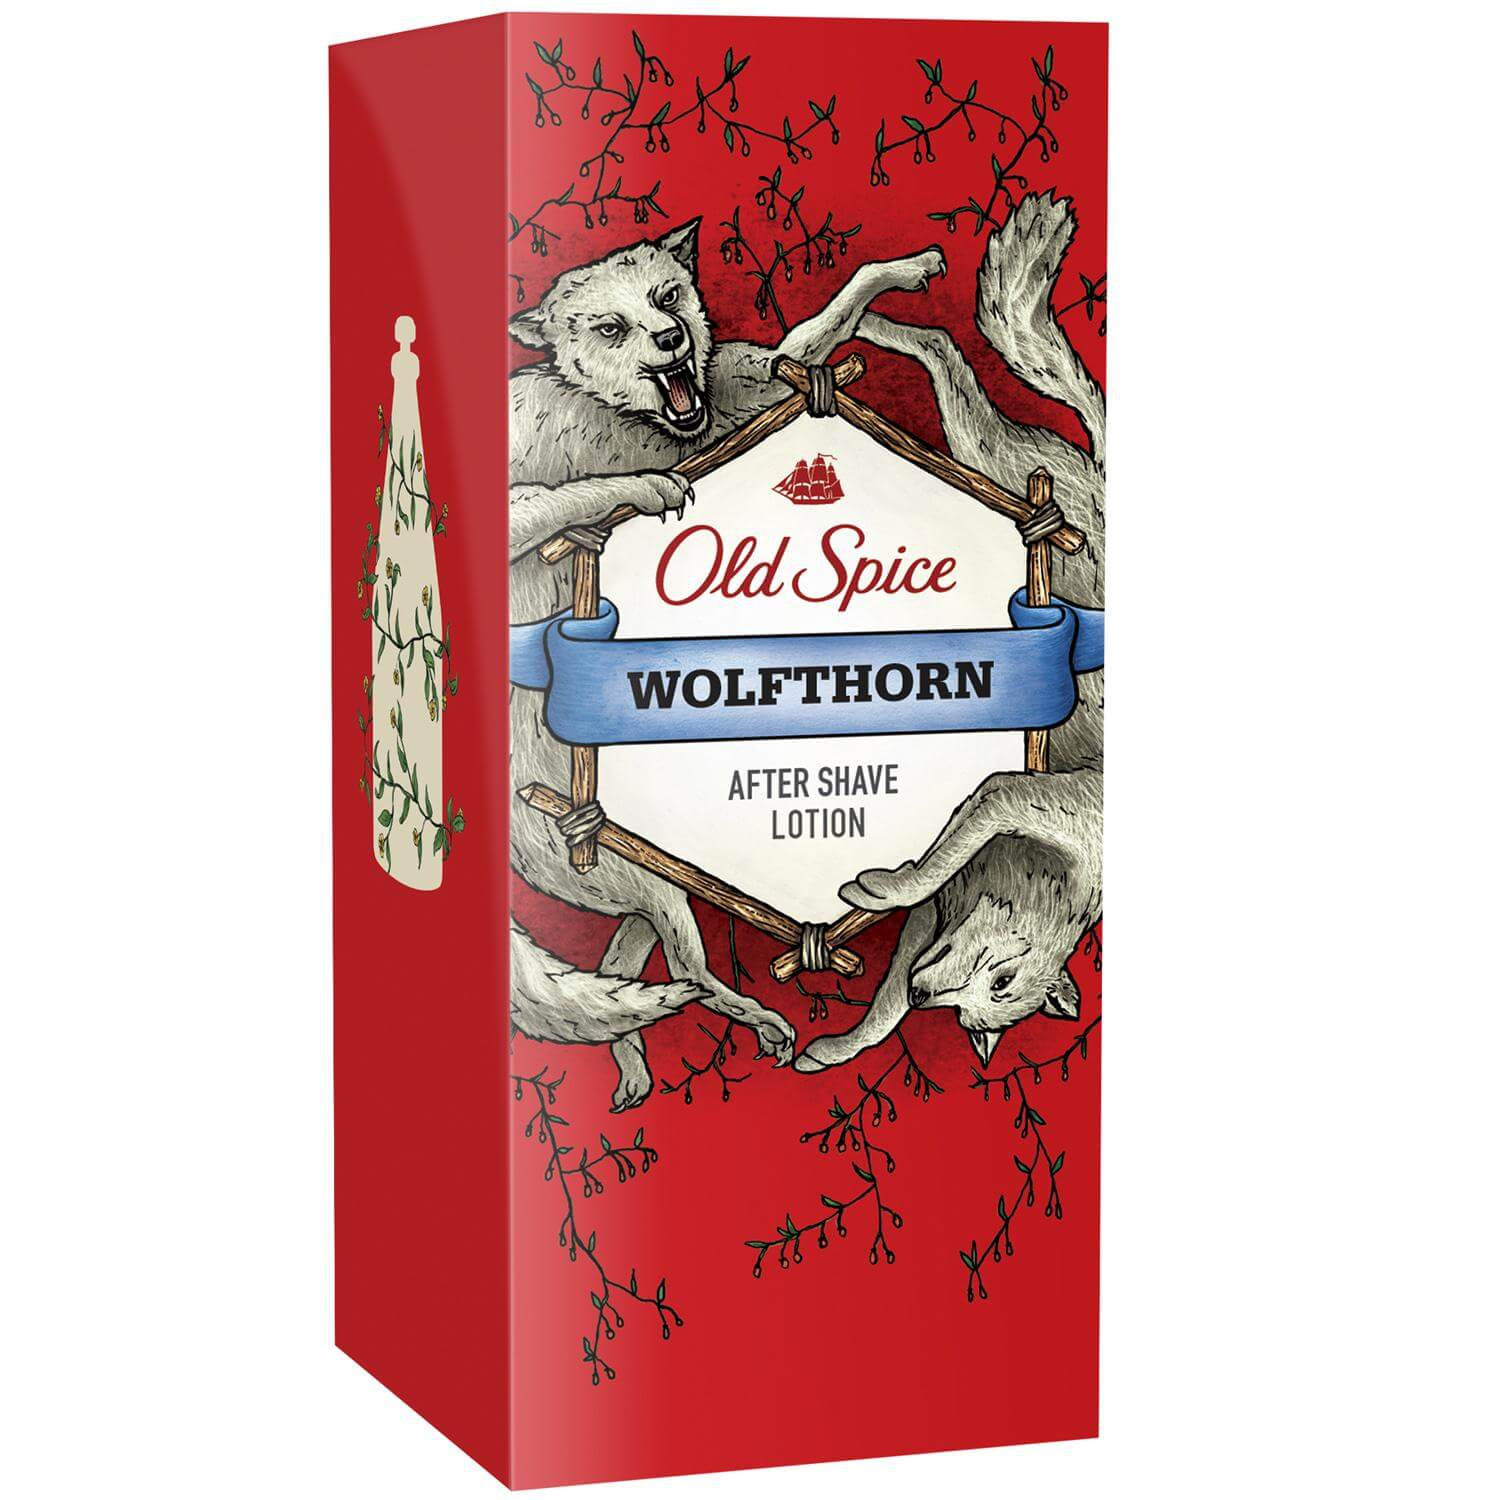 Old Spice Wolfthorn After Shave Lotion for Men Ενυδατική Λοσιόν για Μετά το Ξύρισμα 100ml Προσφορά -30%